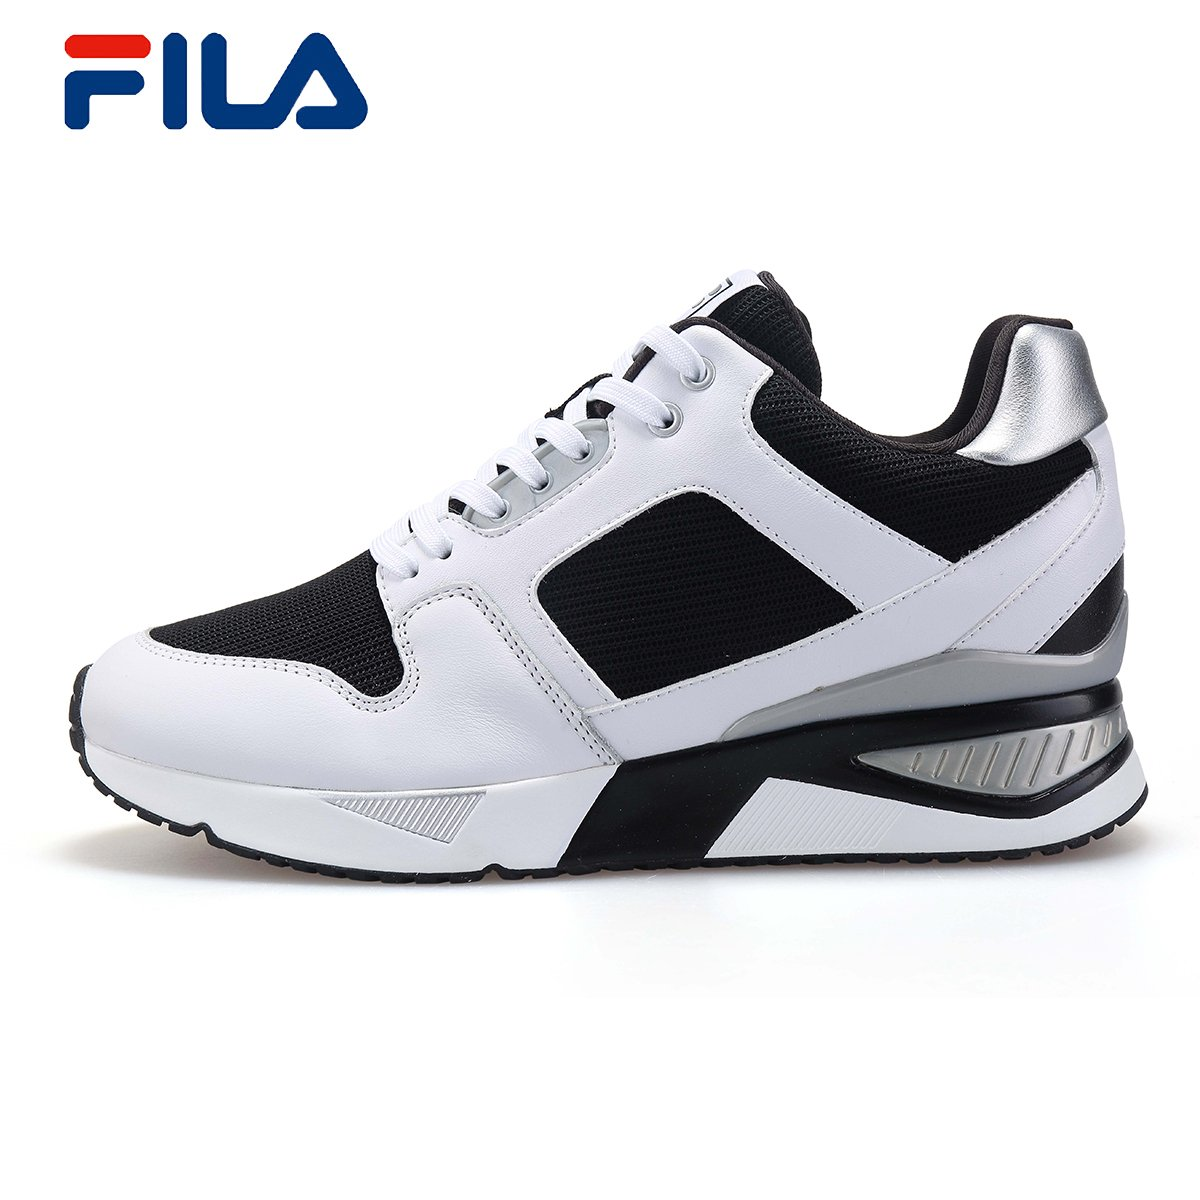 eff8d4a4d55d Grab FILA Fei Le autumn new high-rise shoes female shock-absorbing non-slip  increased casual shoes) 22635104